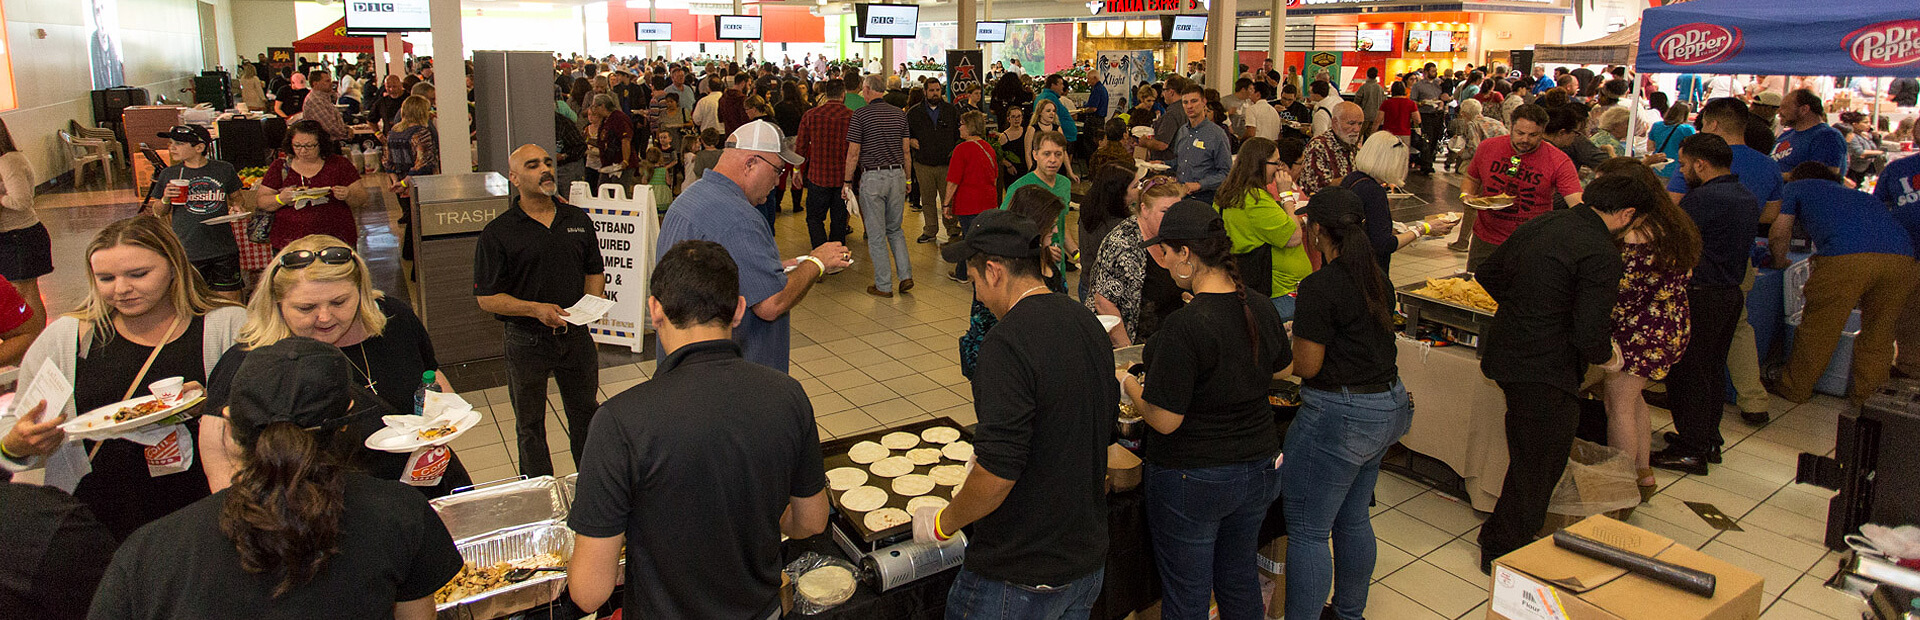 The Taste of North Texas Food and Drink Event - Golden Triangle Mall